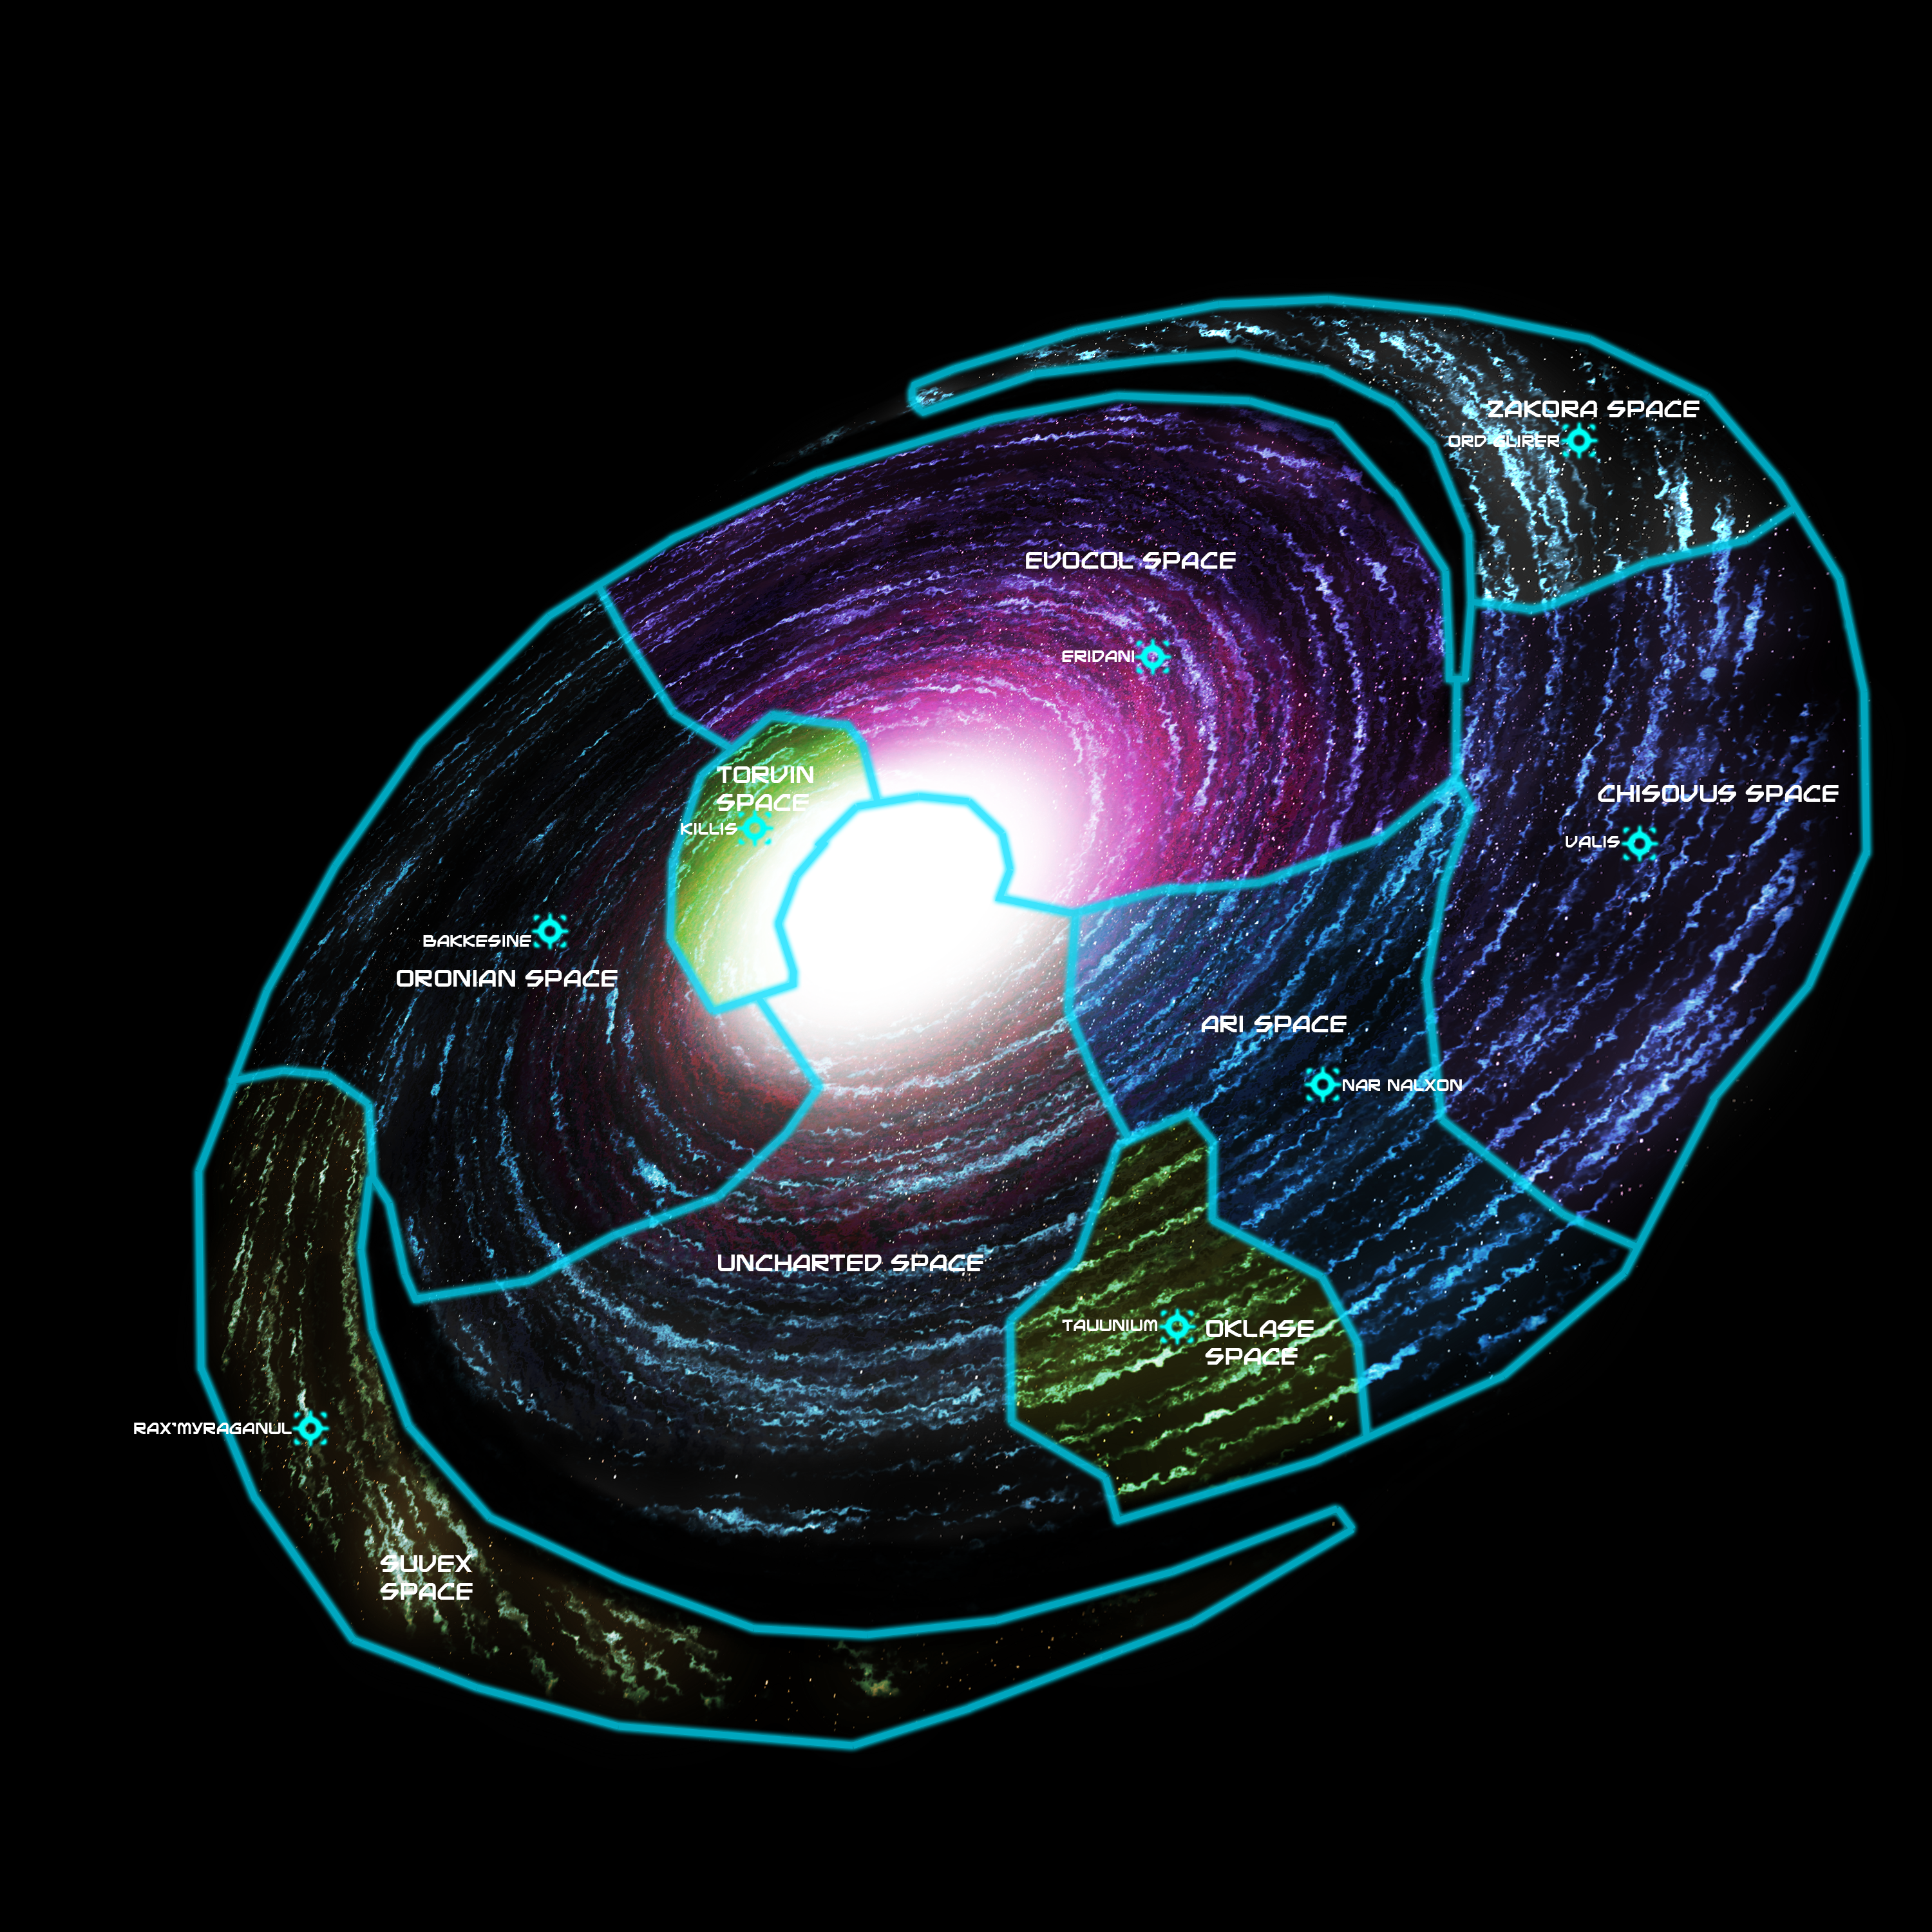 Makilna Galactic Map V2 - Pre-Infinite War by Myrik-Tylo on ... on sun map, lightning map, milky way map, spectrum map, classic map, science map, astronomy map, world map, custom map, supreme map, universe map, venus map, solar system map, usa map, hotspot map, asteroid map, continents map, google map, constellation map, local supercluster map,